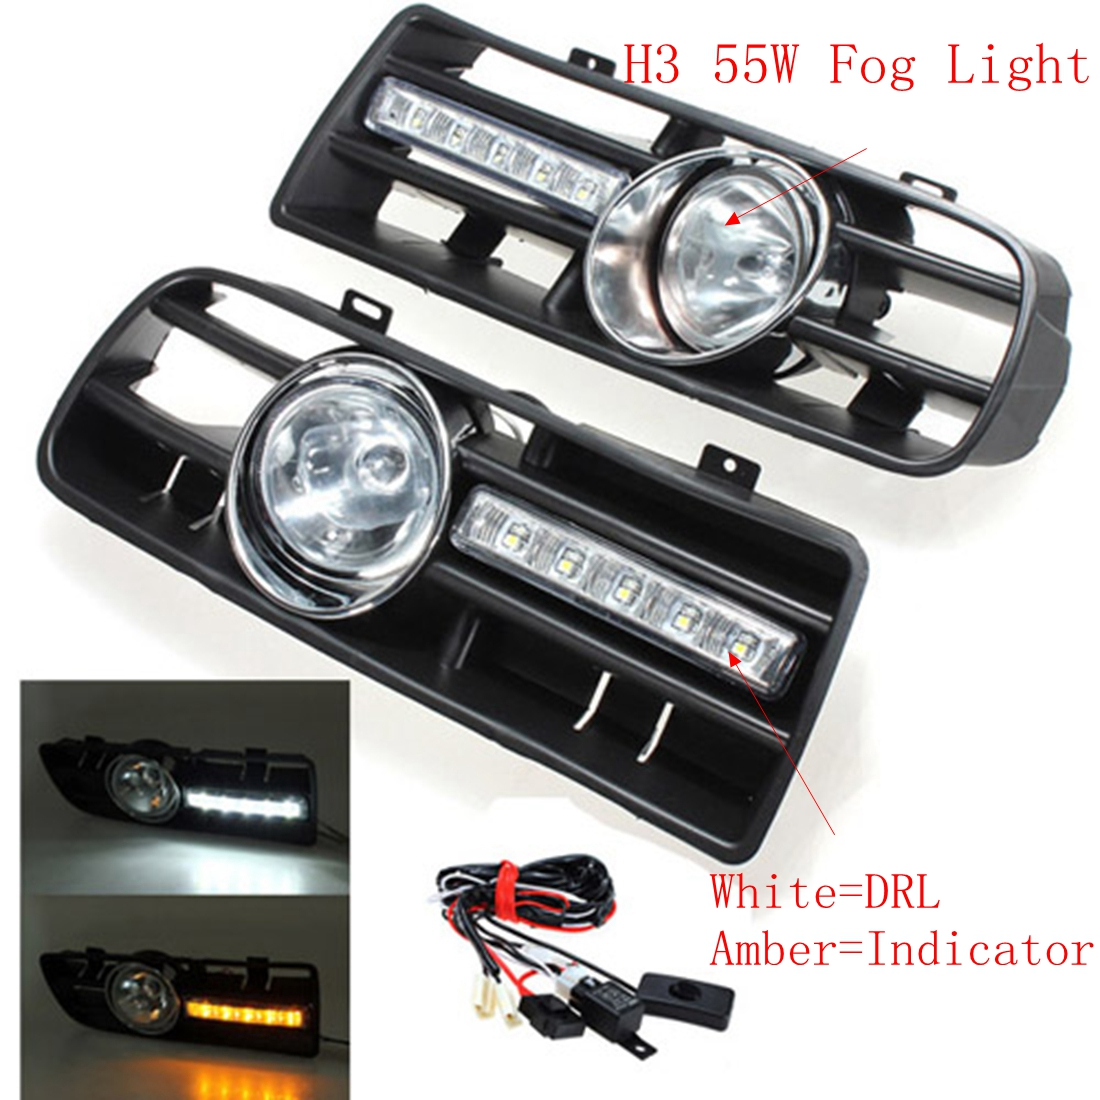 2Pcs for VW GOLF MK4 1997-2006 Car Front Bumper Grille Driving Fog Lamp Light Set With LED new car front fog light with grill fog lamp cover for vw jetta 3 and golf 3 from 1992 1997